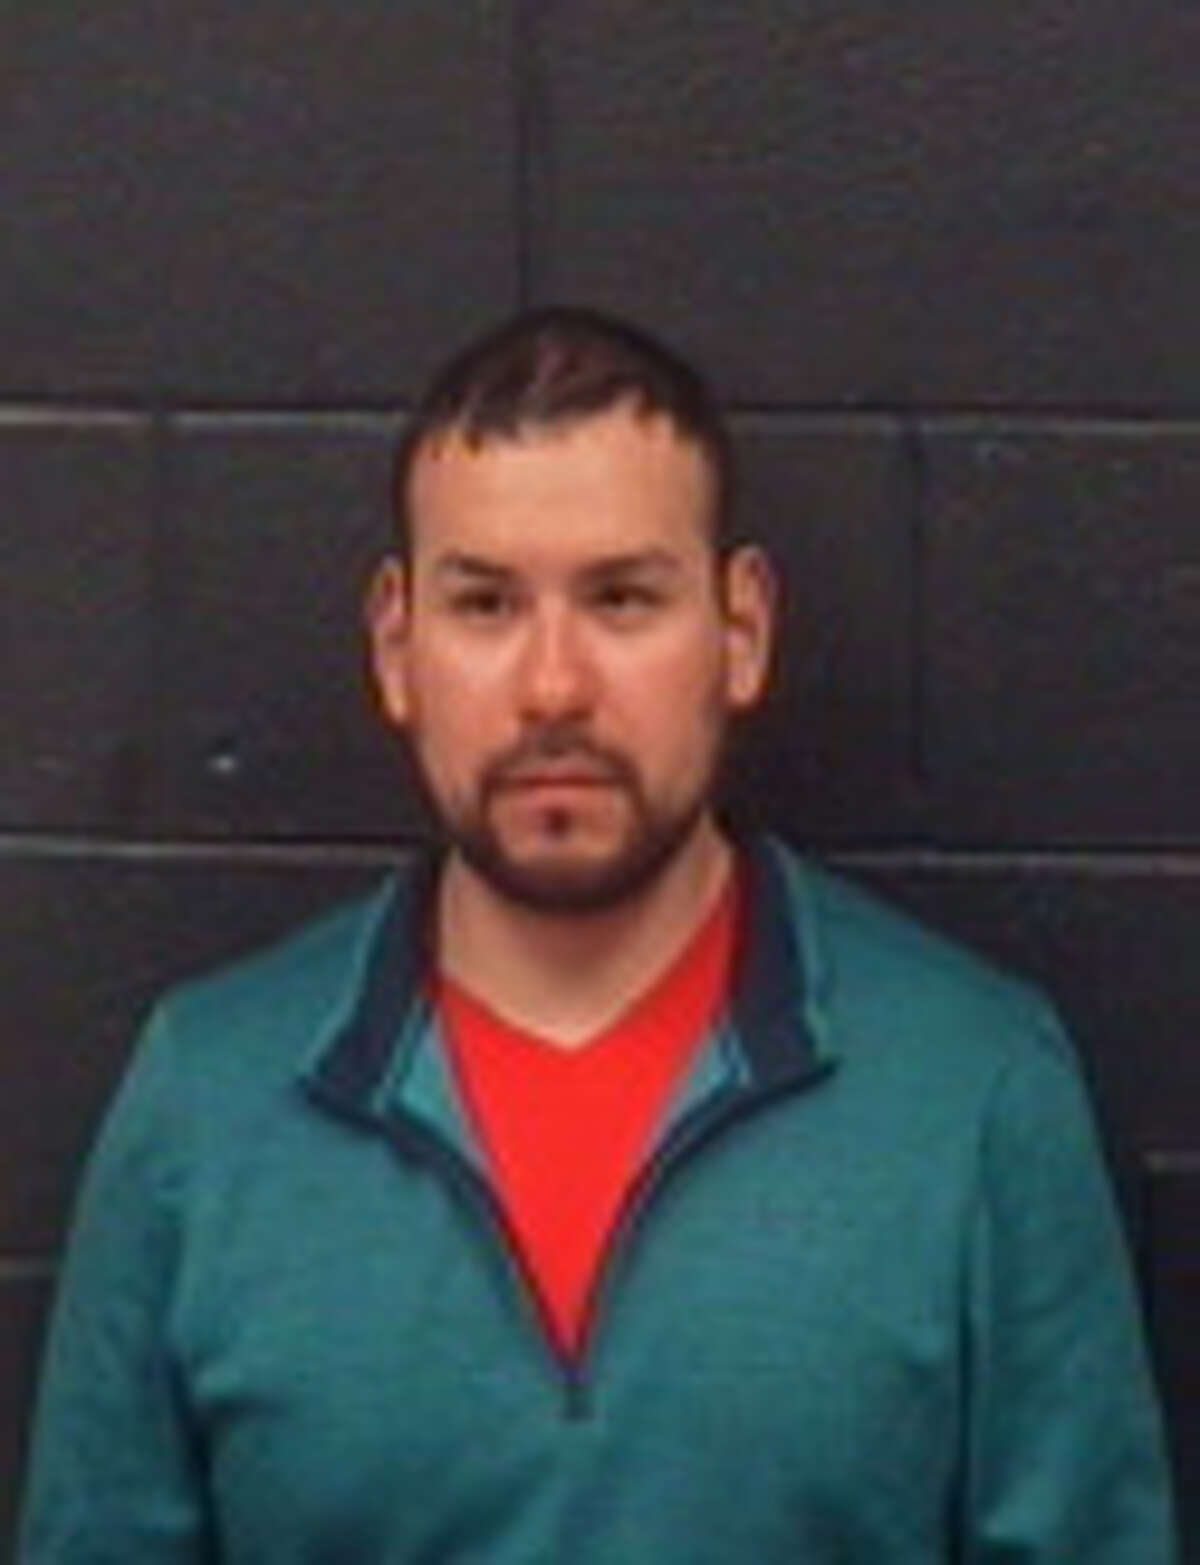 Christopher A. Arce was charged with driving while intoxicated.